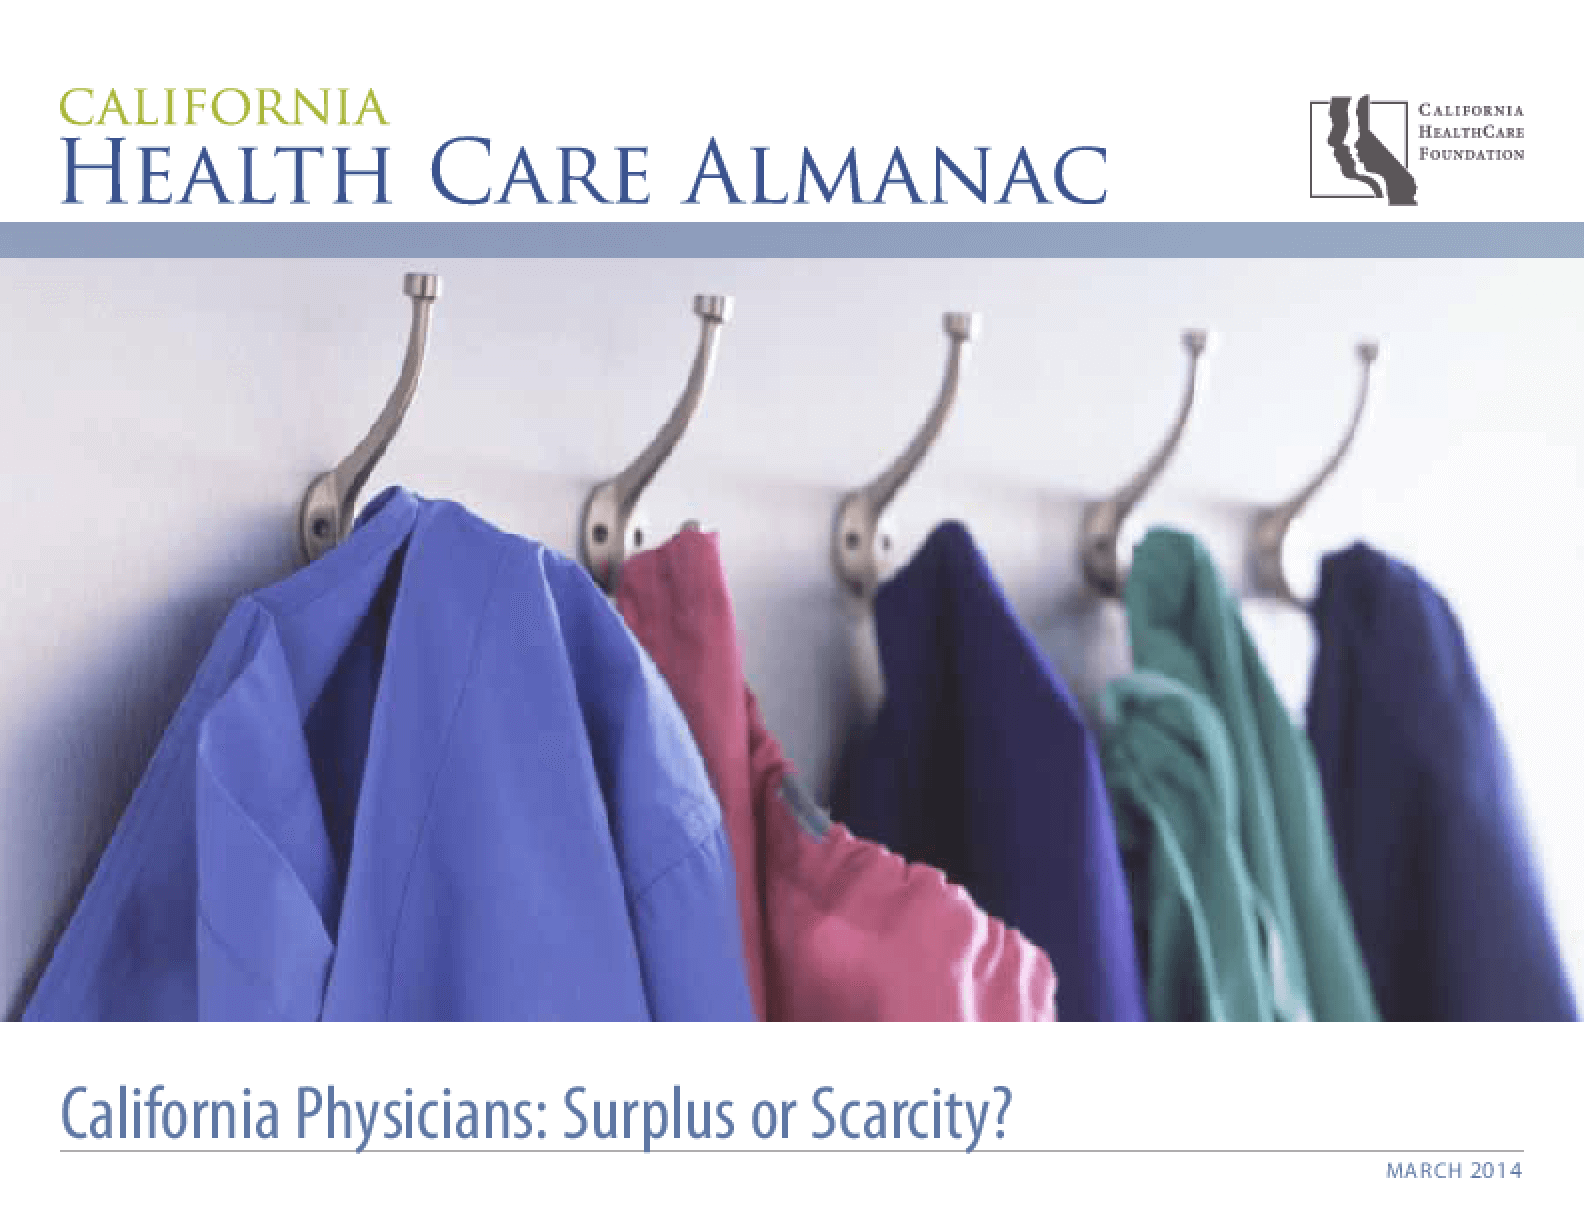 California Health Care Almanac: California Physicians - Surplus or Scarcity?